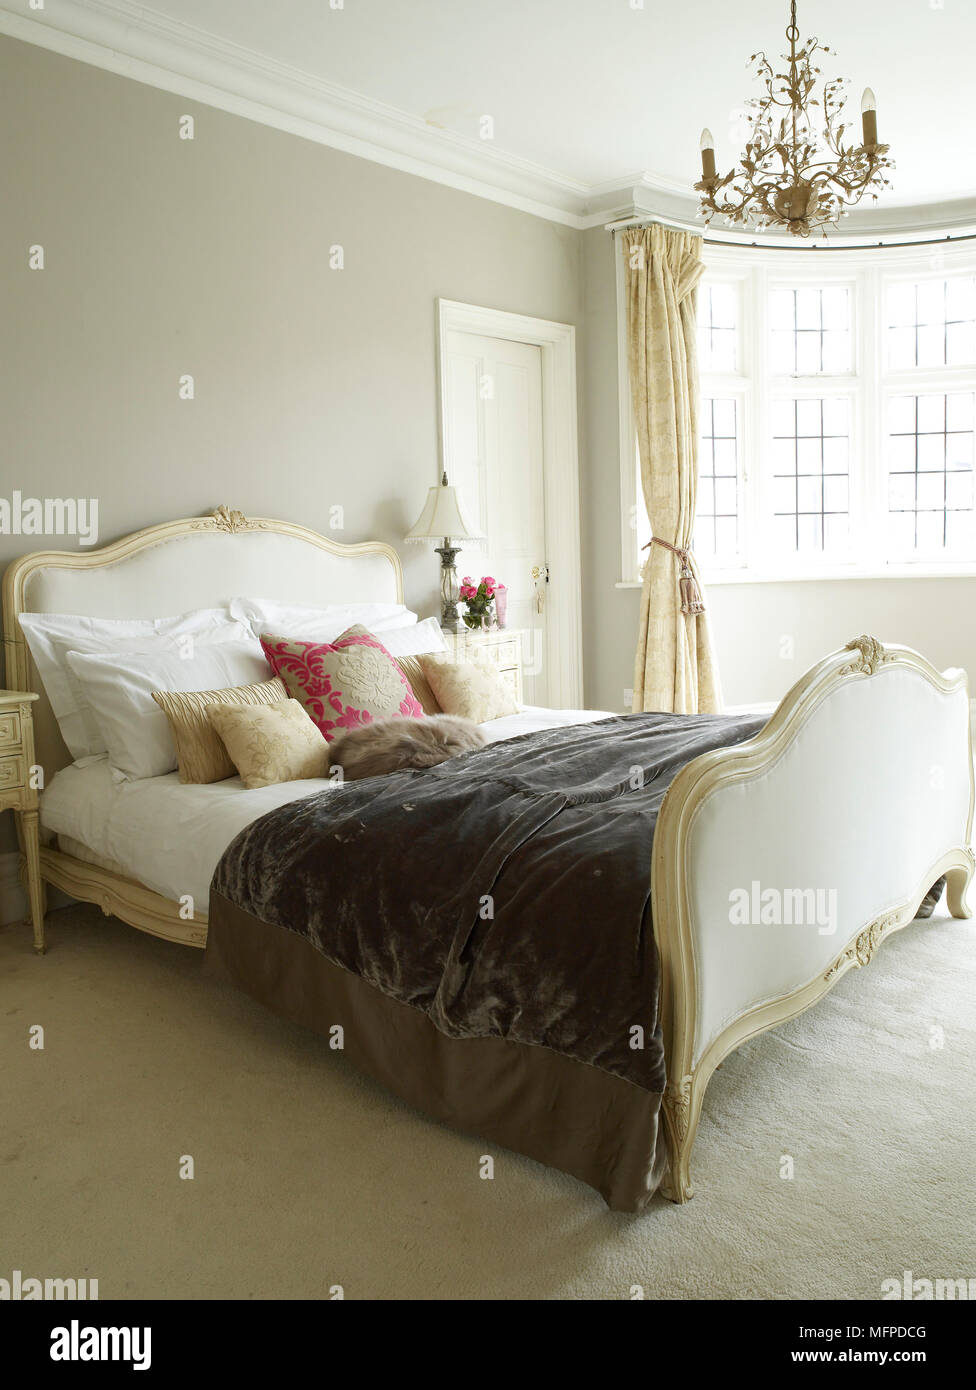 Chandelier above period style double bed with upholstered head and footboard